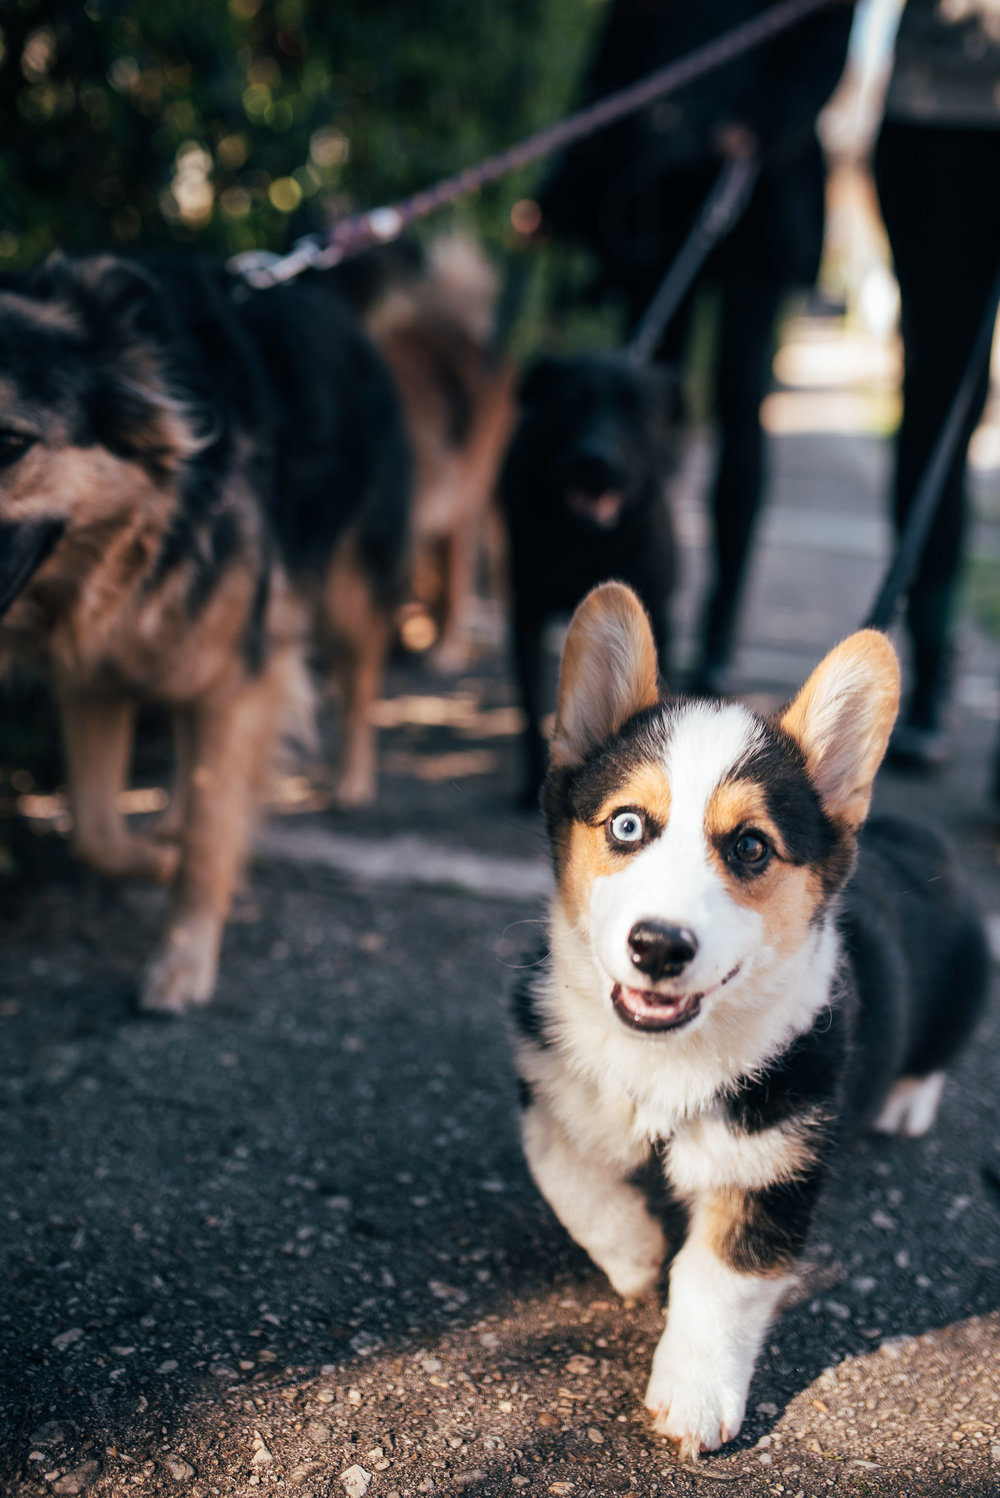 raleigh dogwalking services - raleigh dogwalkers - north carolina creative community